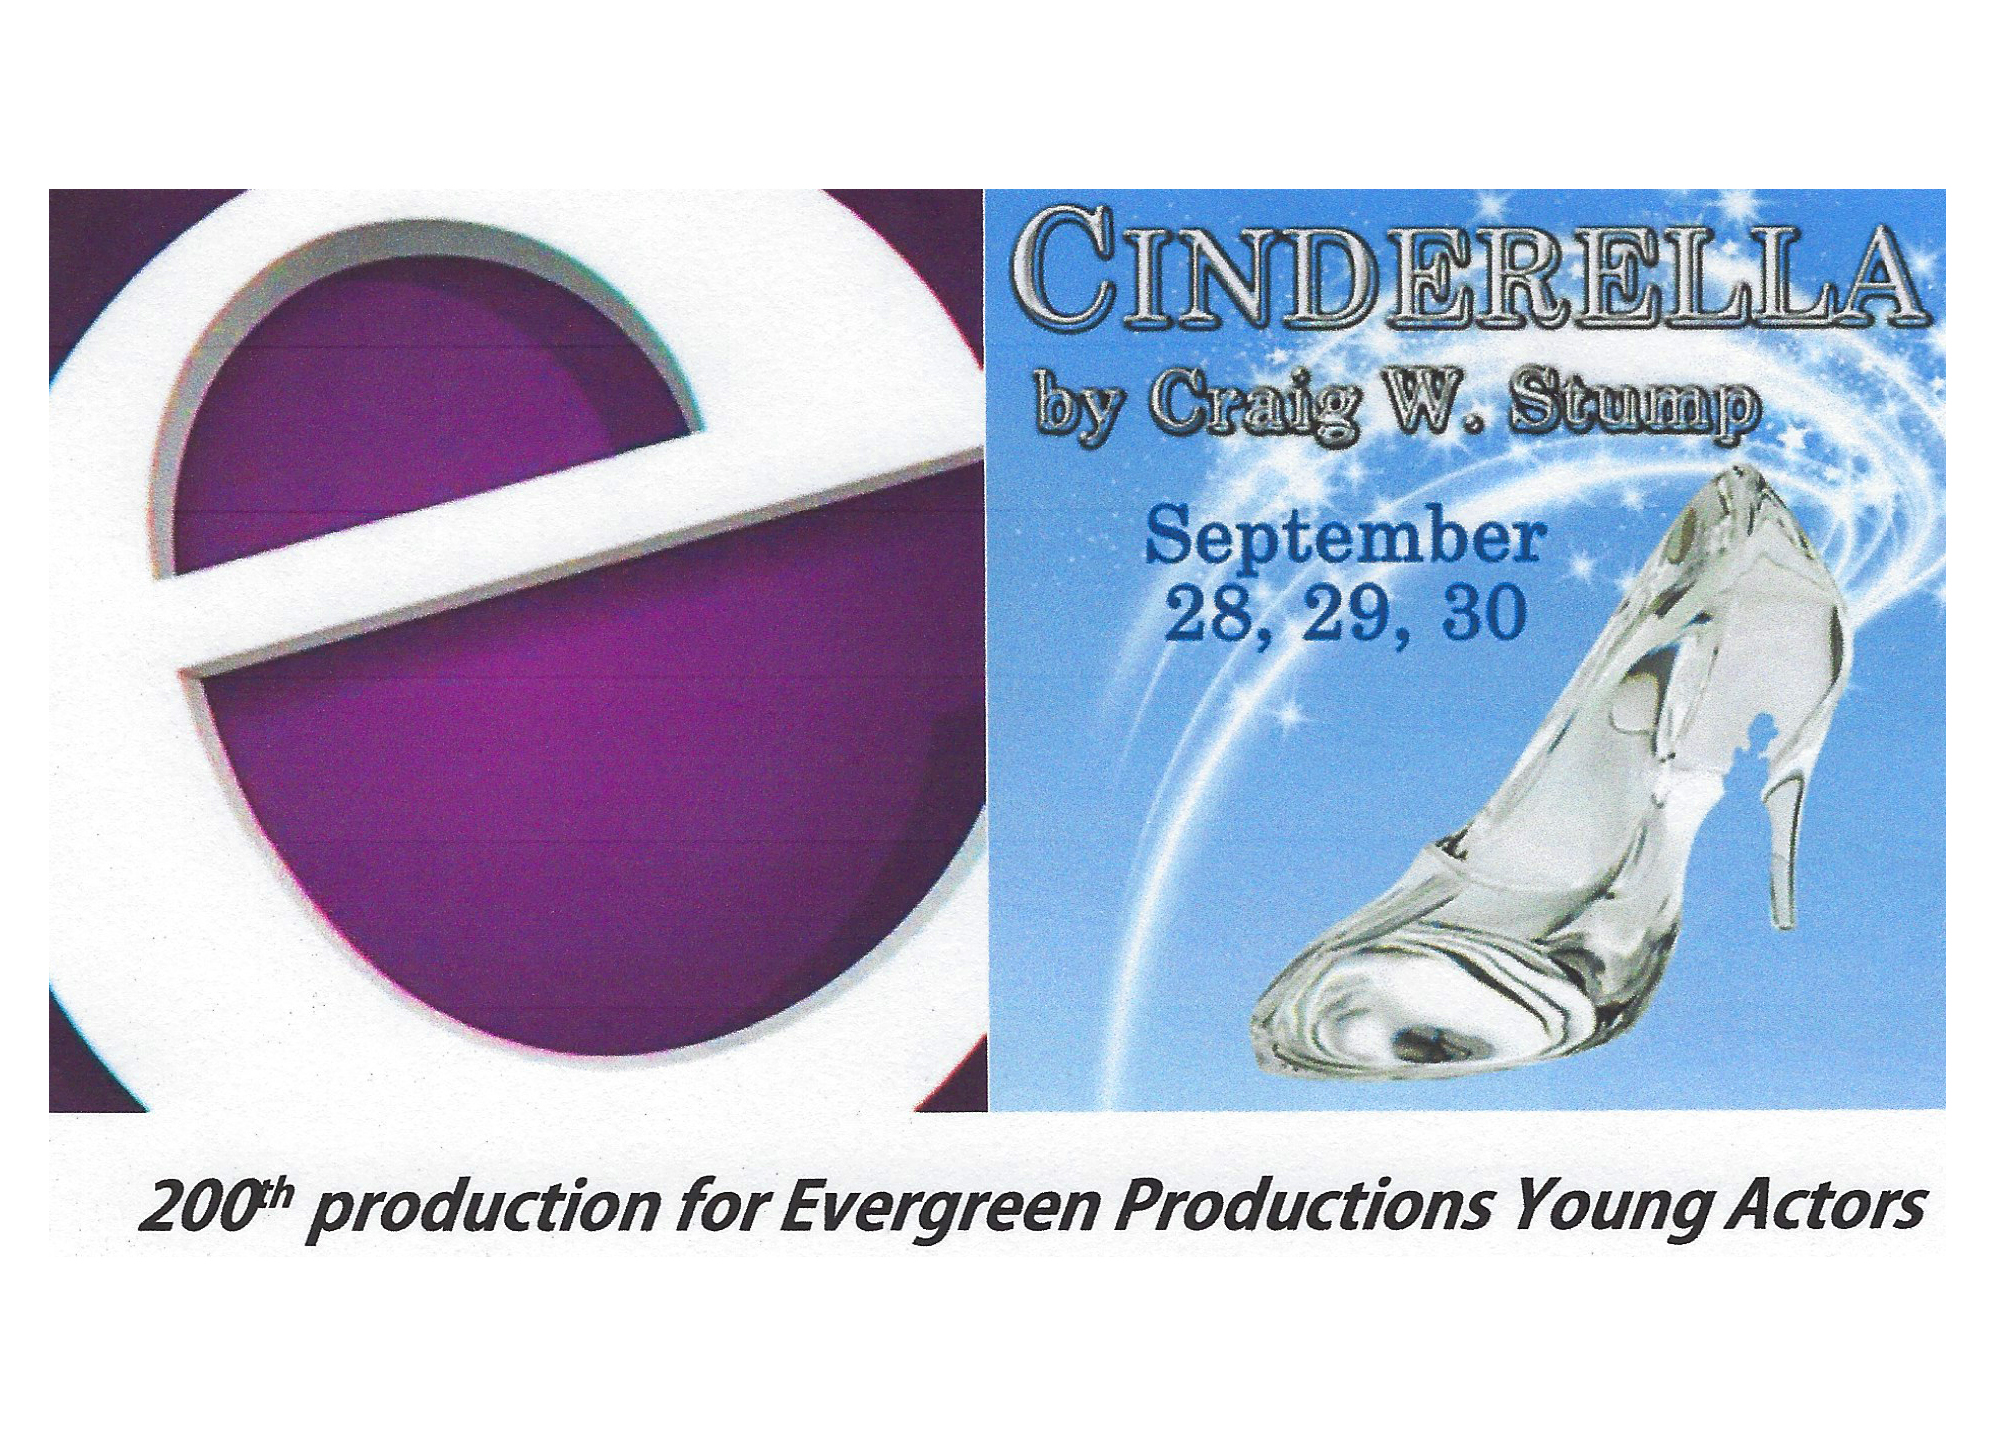 Evergreen Productions Young Actors image_1536424407801.jpg.jpg